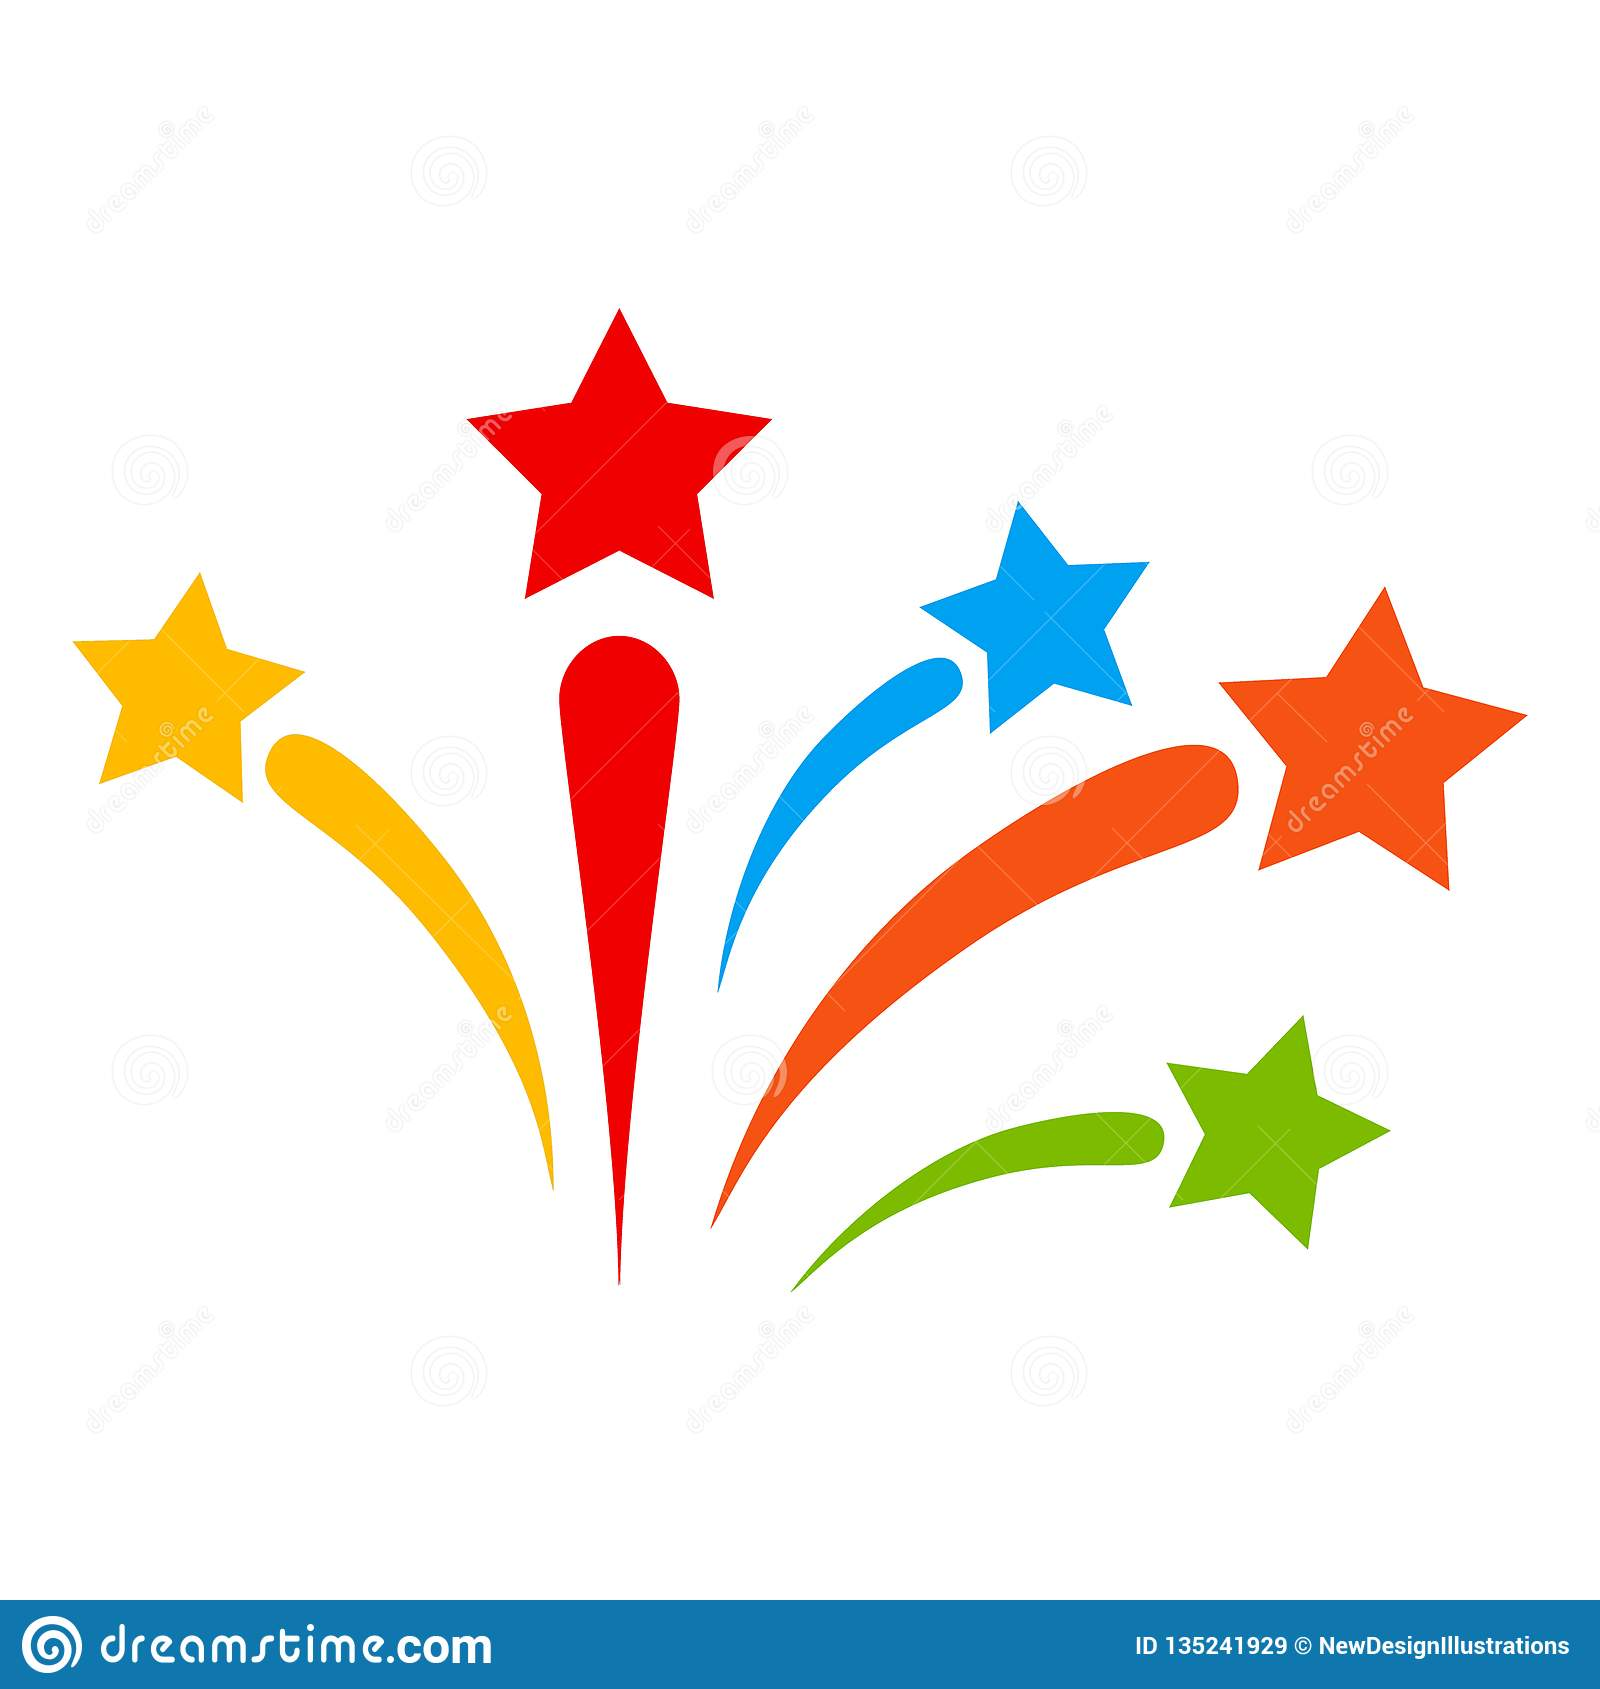 Vector Fireworks Icon Illustration Stock Vector ...Fireworks Icon Image